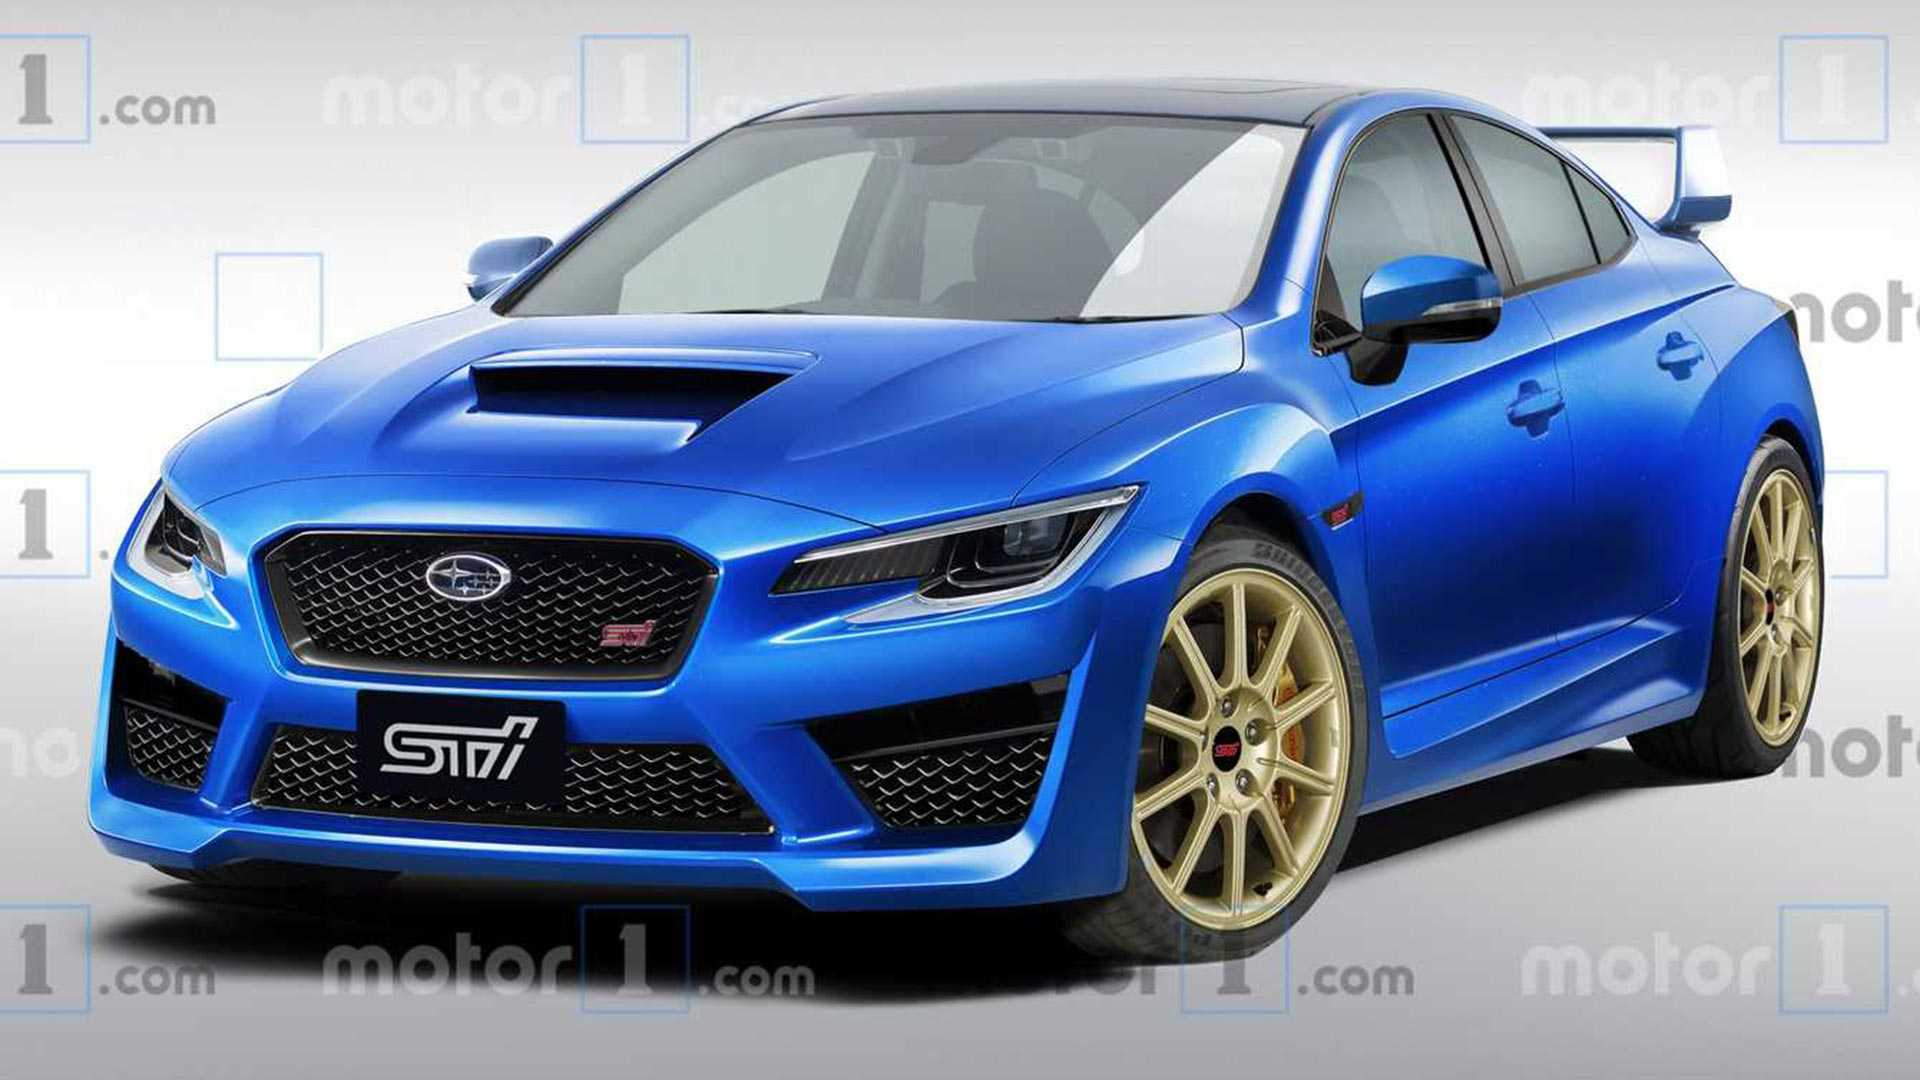 37 Concept of 2020 Subaru Wrx Release Date Price and Review by 2020 Subaru Wrx Release Date